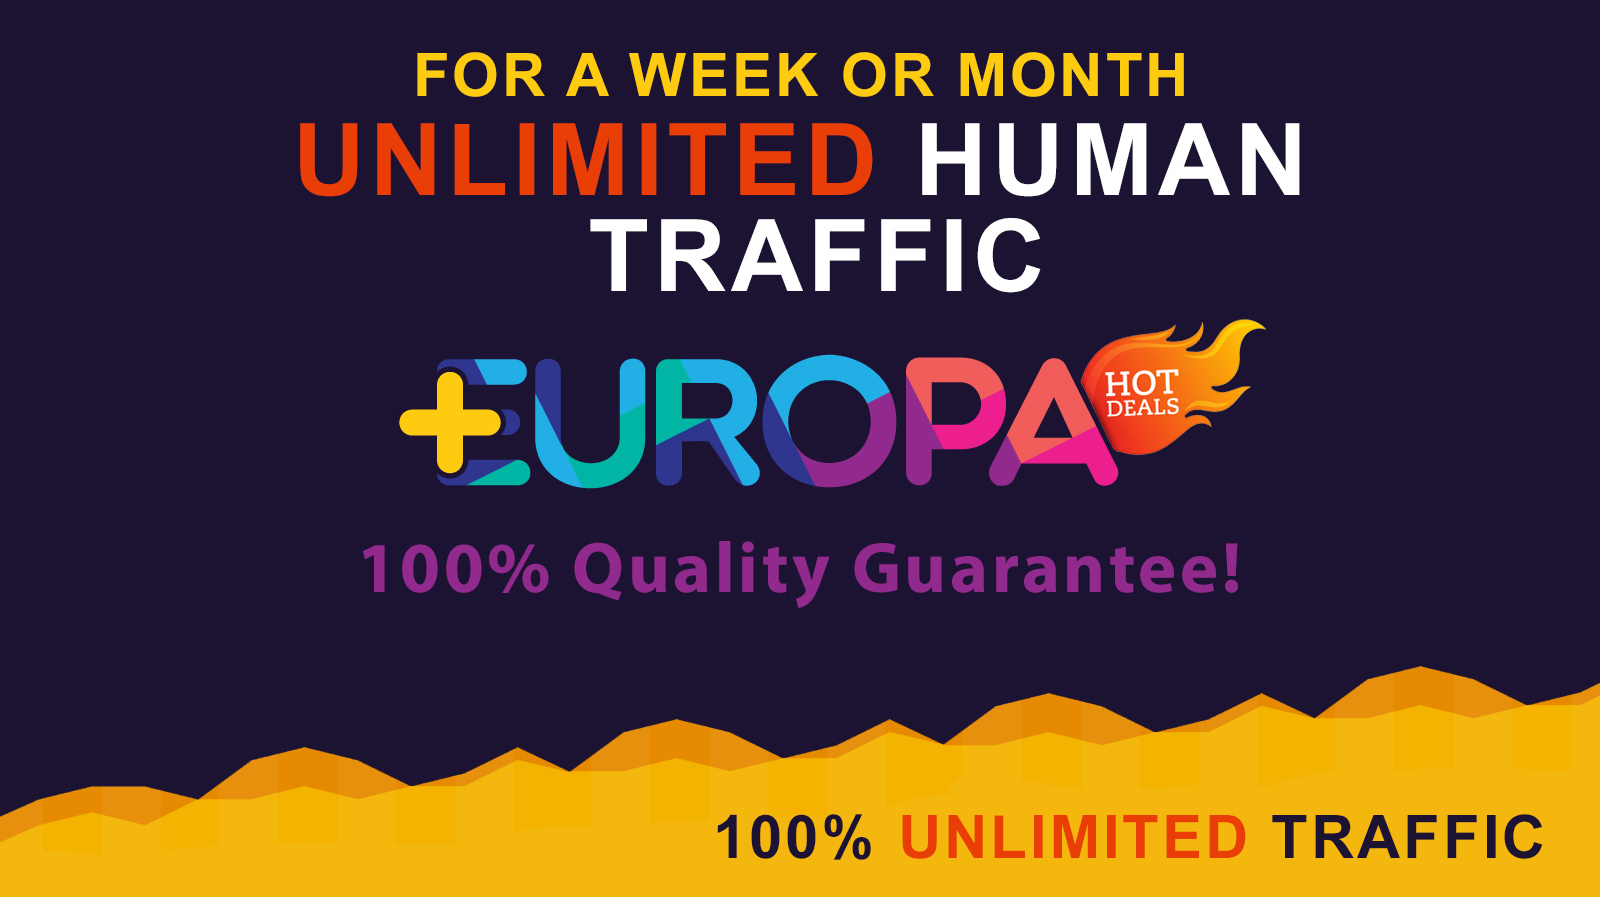 UNLIMITED HUMAN TRAFFIC | FOR A WEEK OR MONTH | PLUS BONUS